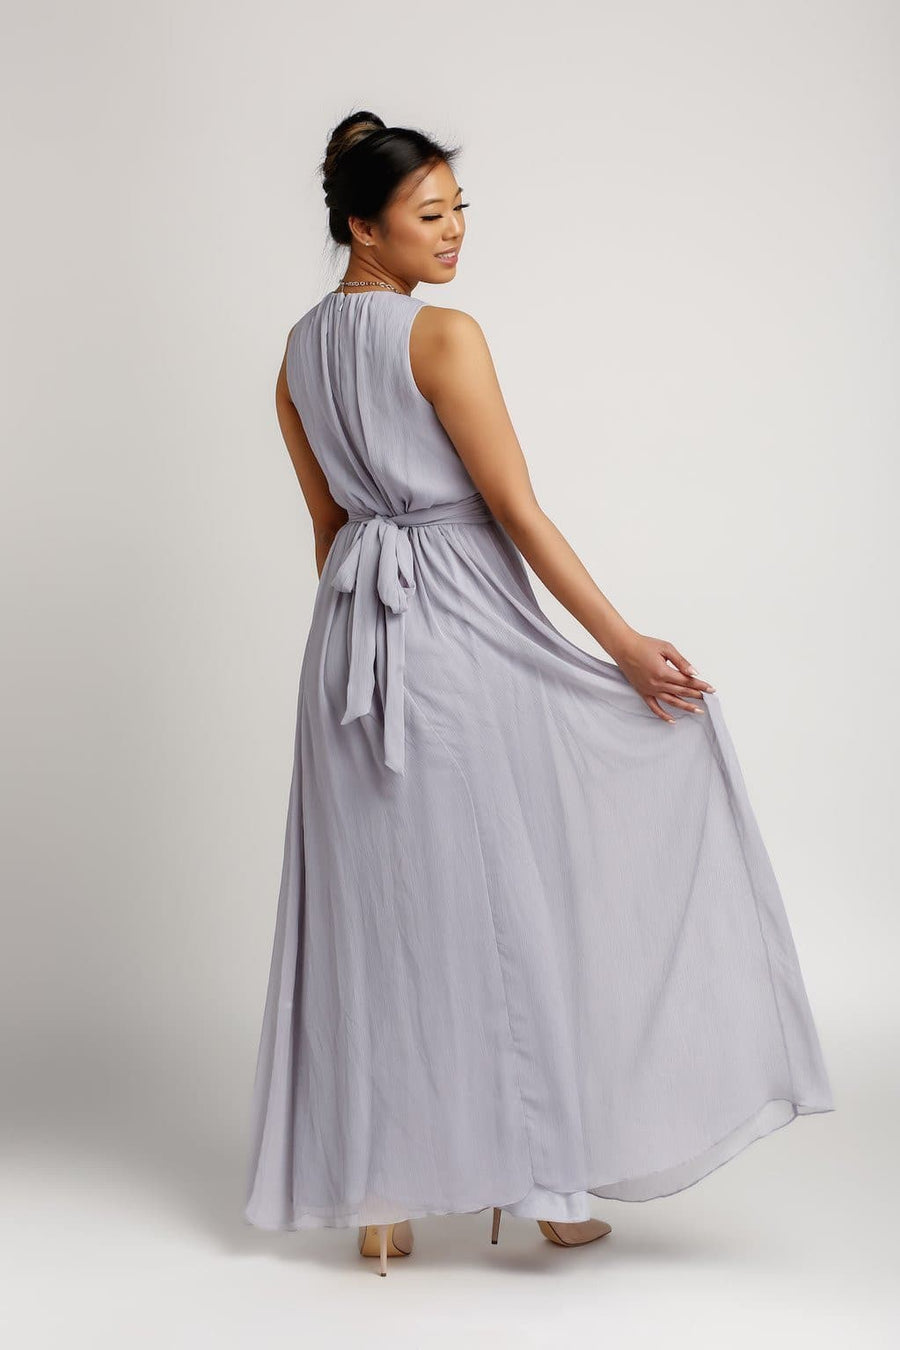 Bridesmaid Dresses - Jewel Neck Floor Length Chiffon Bridesmaid Dress - BridesMade